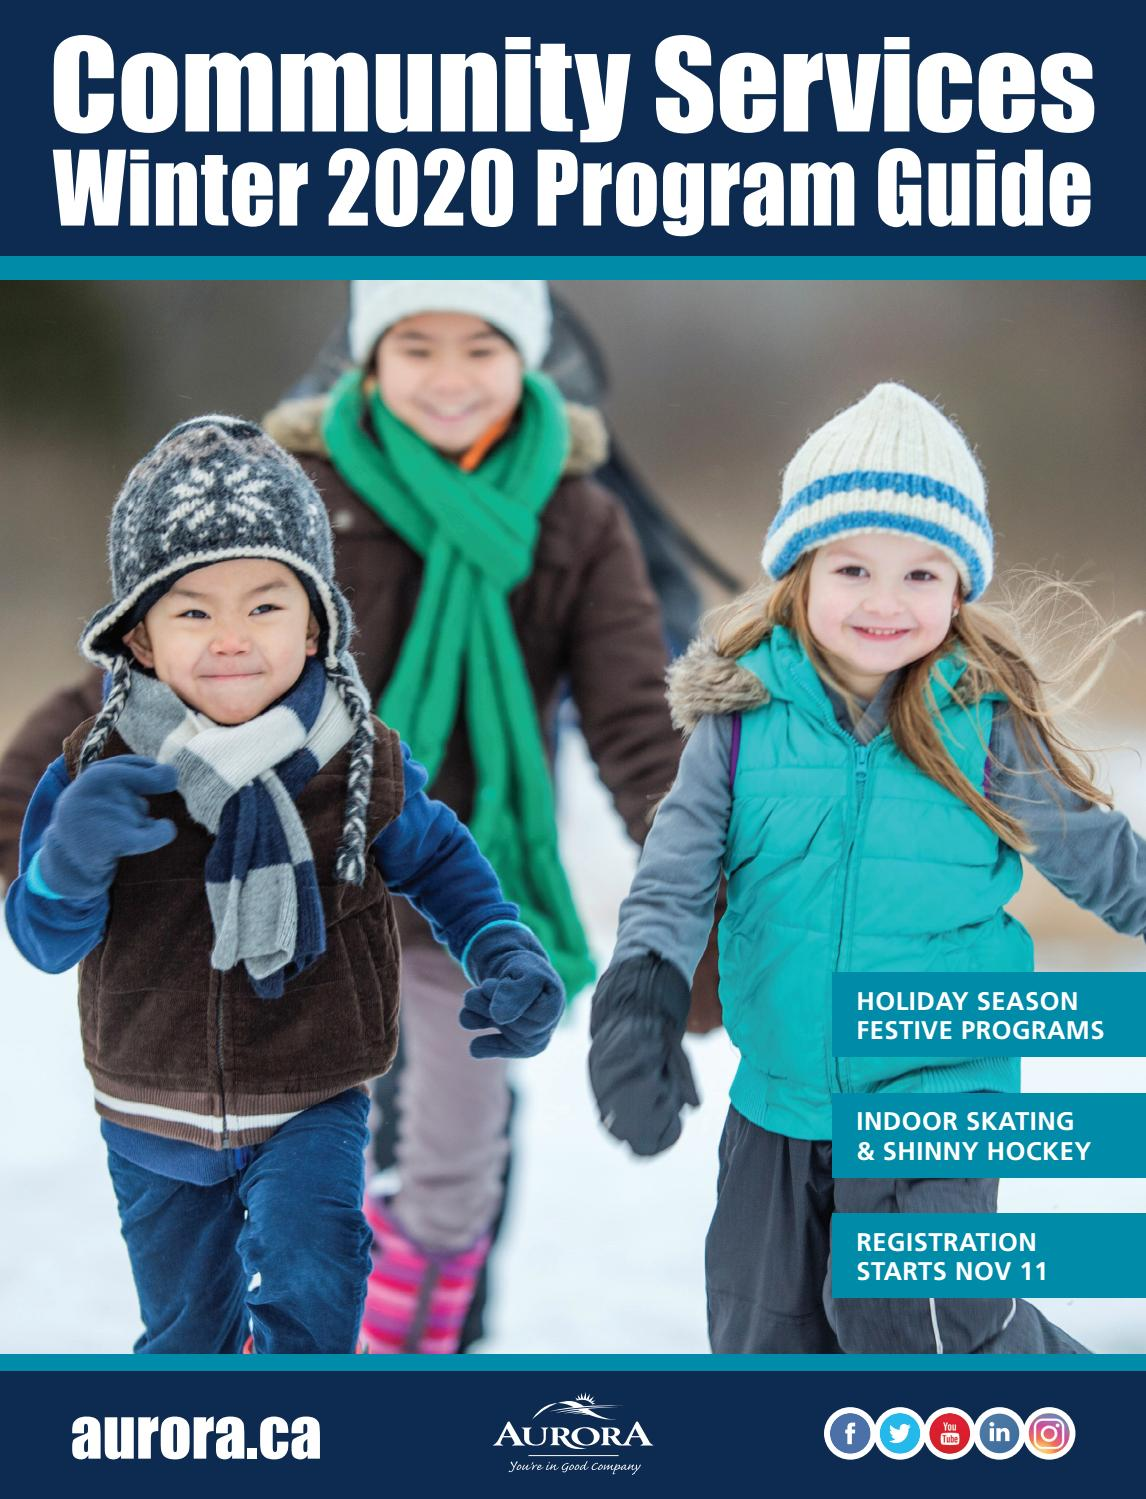 Christmas Craft Event Ontario Ambulance 2020 Community Services Winter 2020 Program Guide by Town of Aurora   issuu